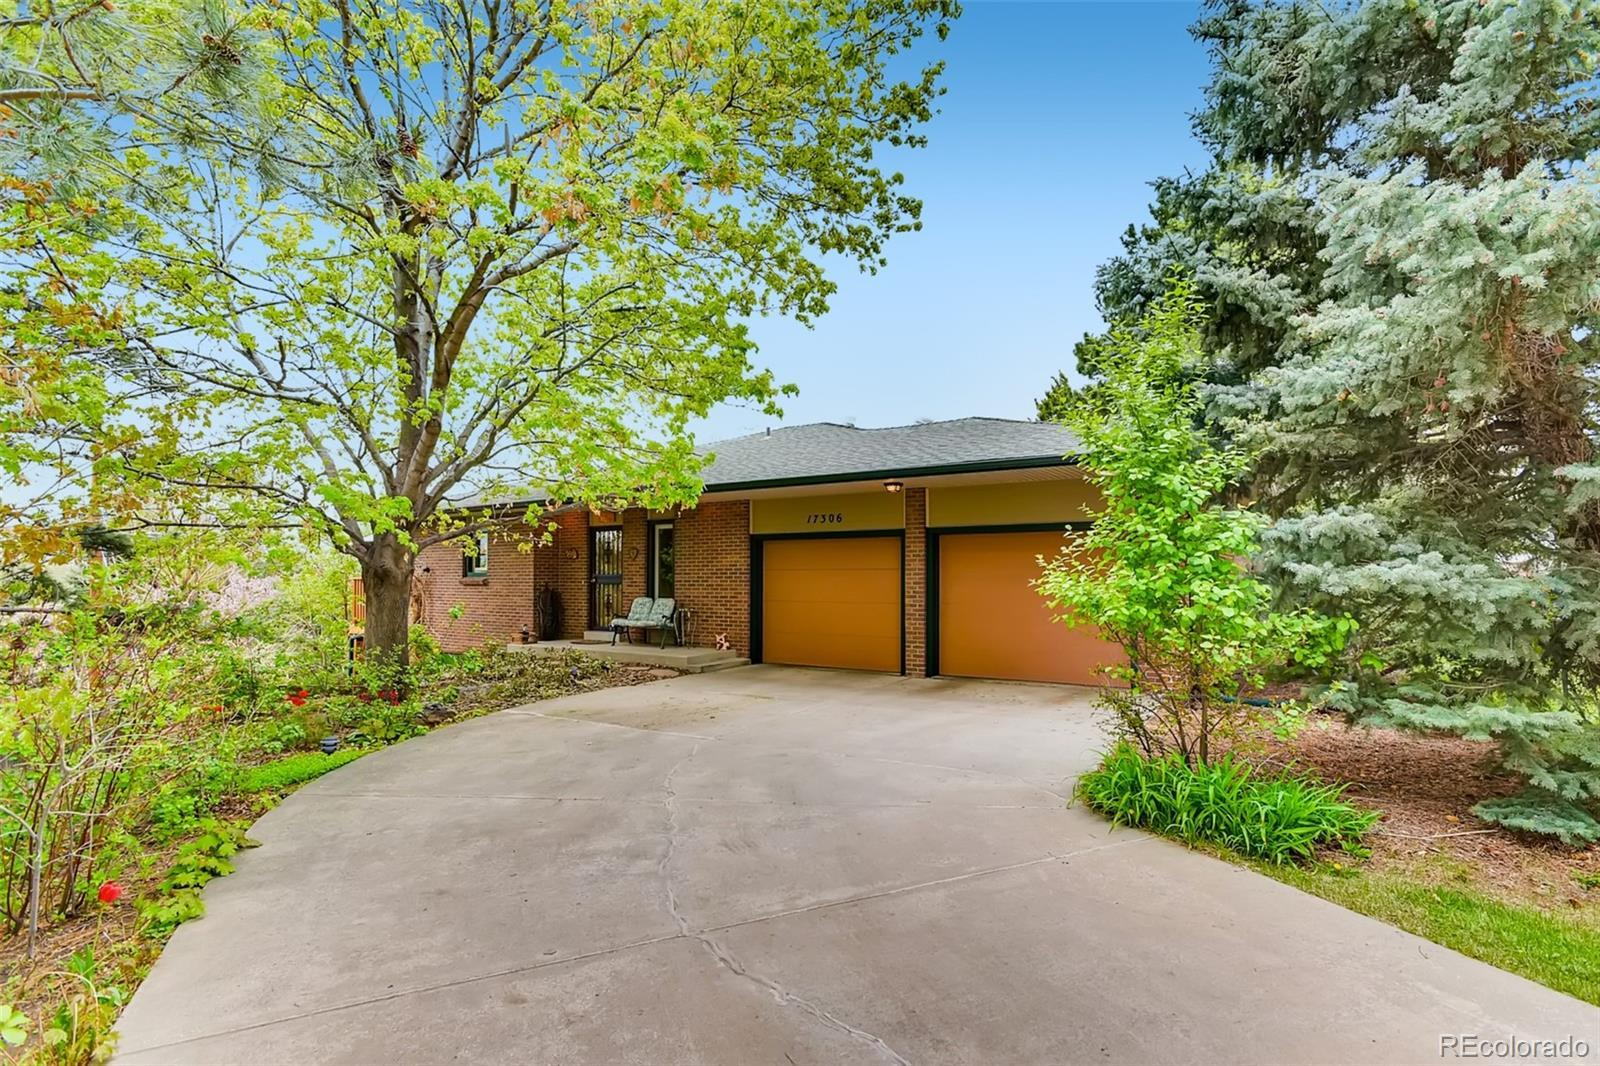 17306 W 17th Place, Golden, CO 80401 - #: 9583937